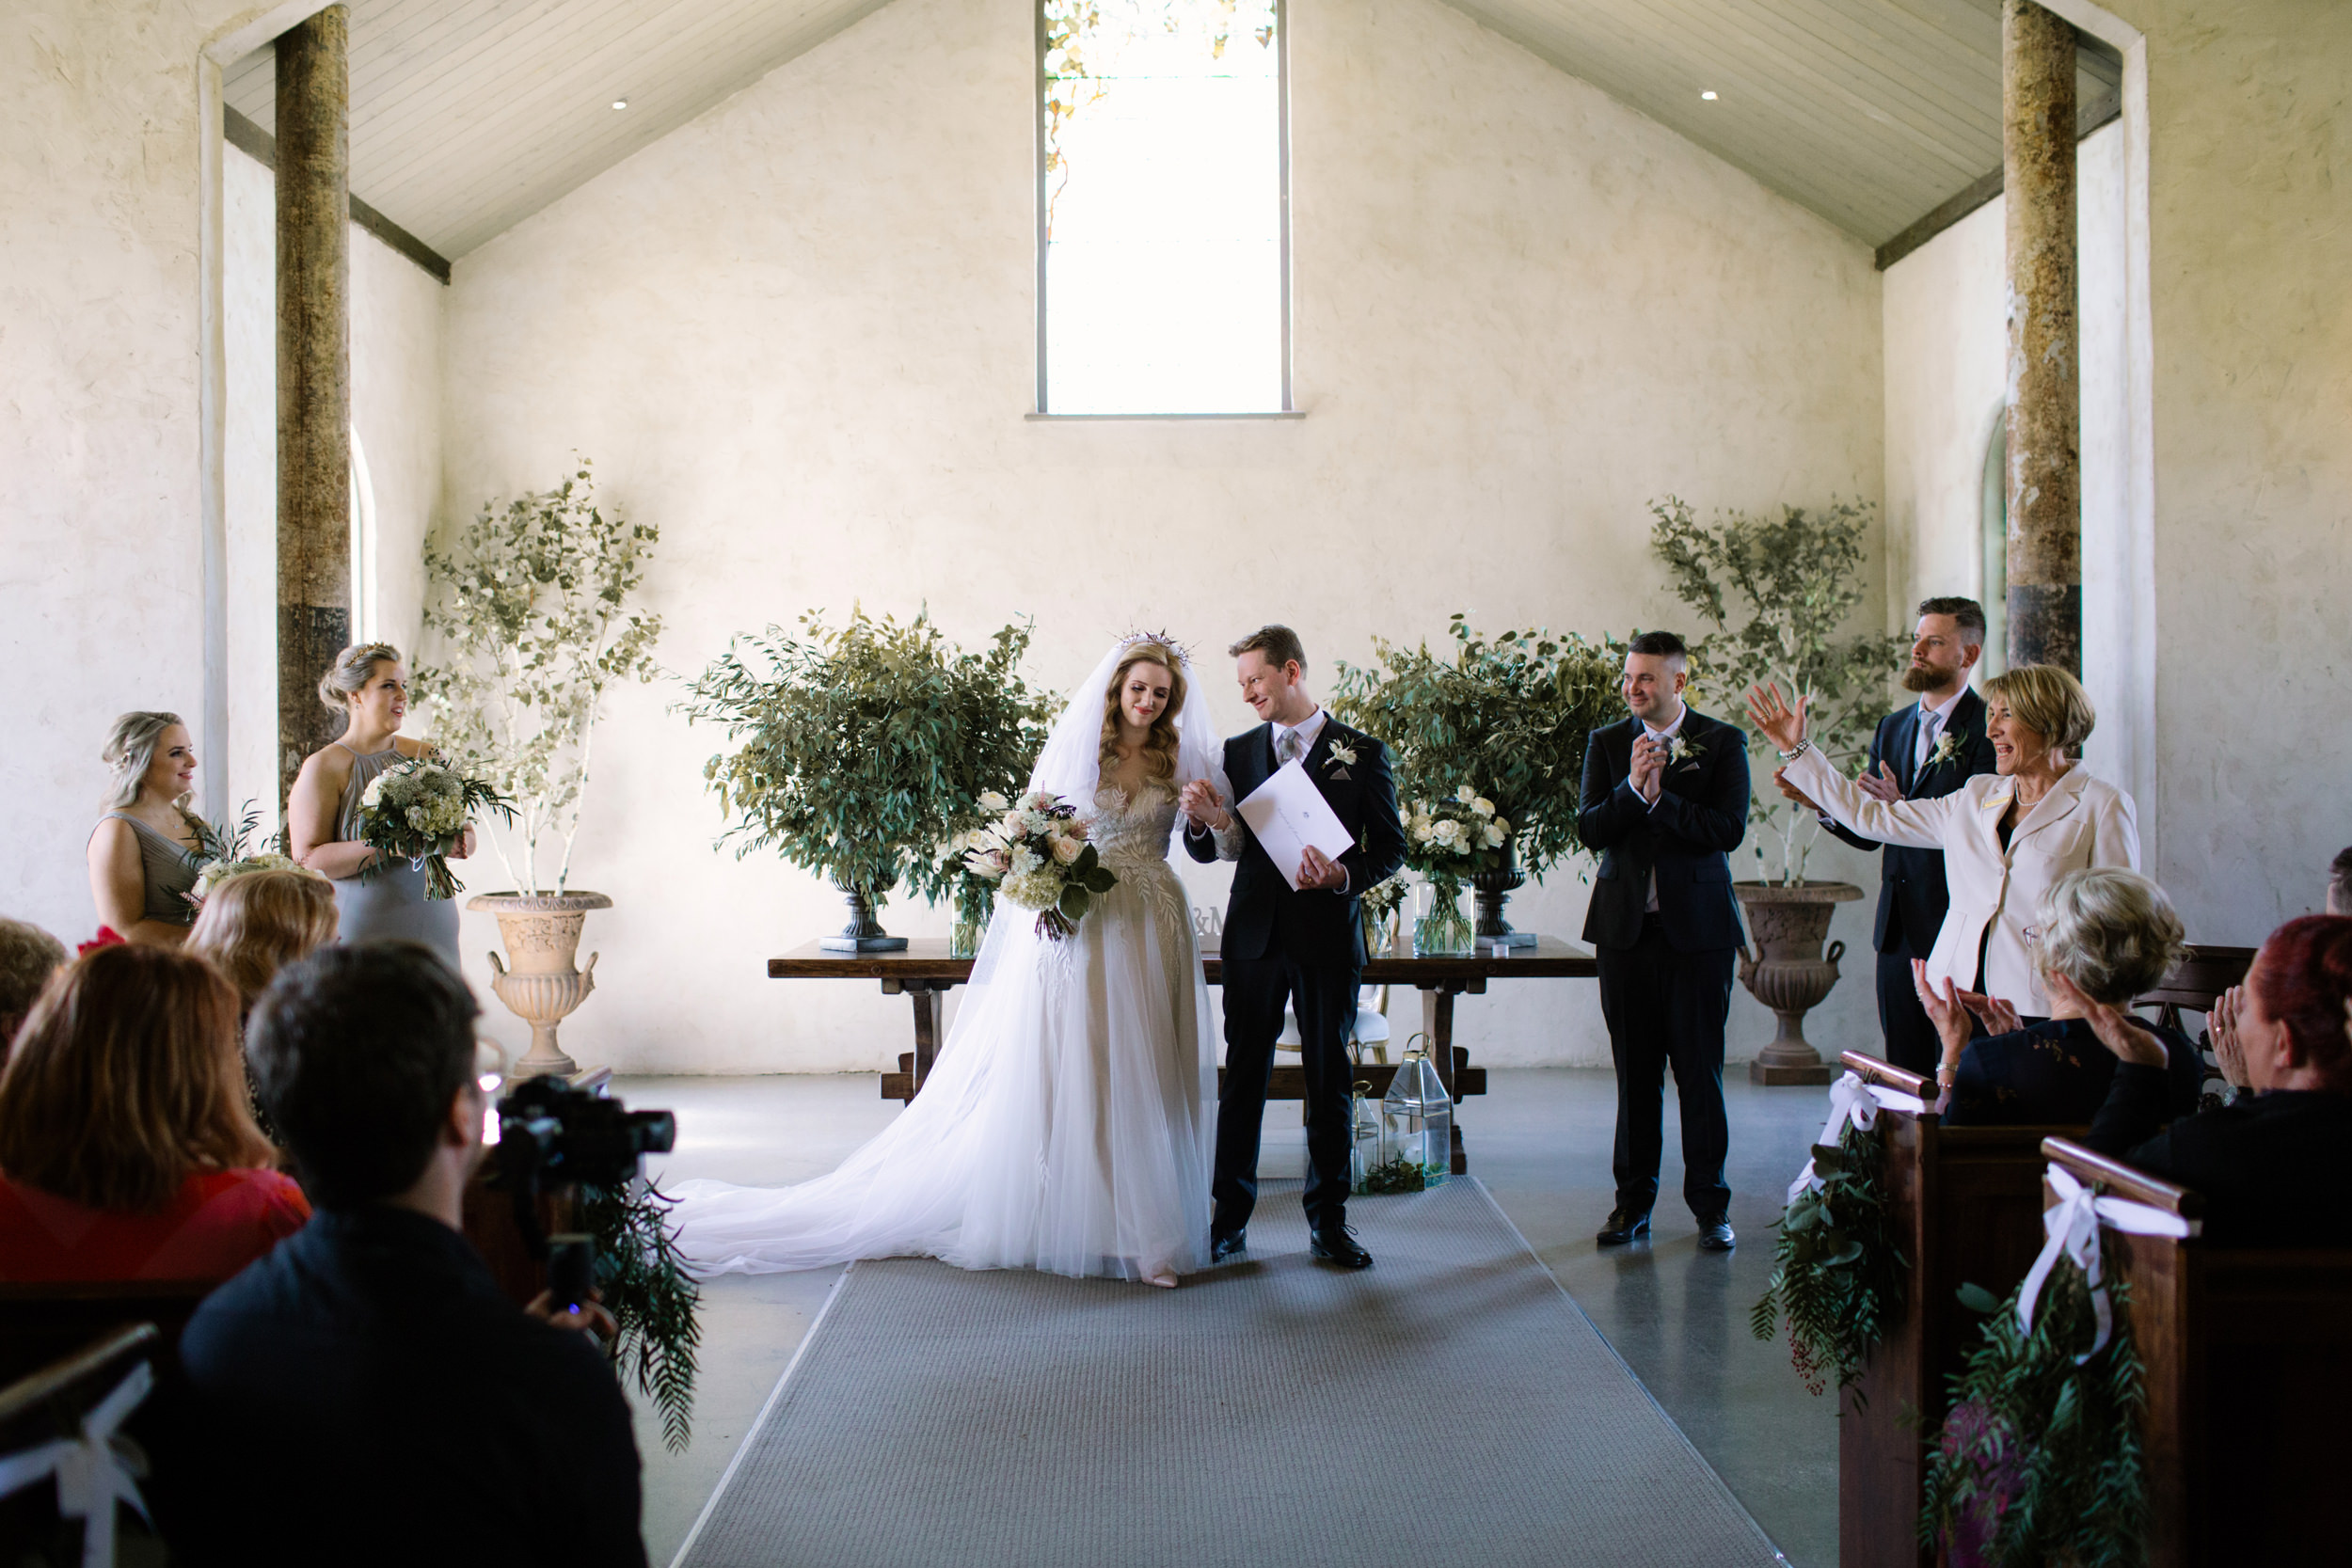 I-Got-You-Babe-&.Co.-Stones-of-the-Yarra-Valley-Wedding-Beverly-Ross0062.JPG